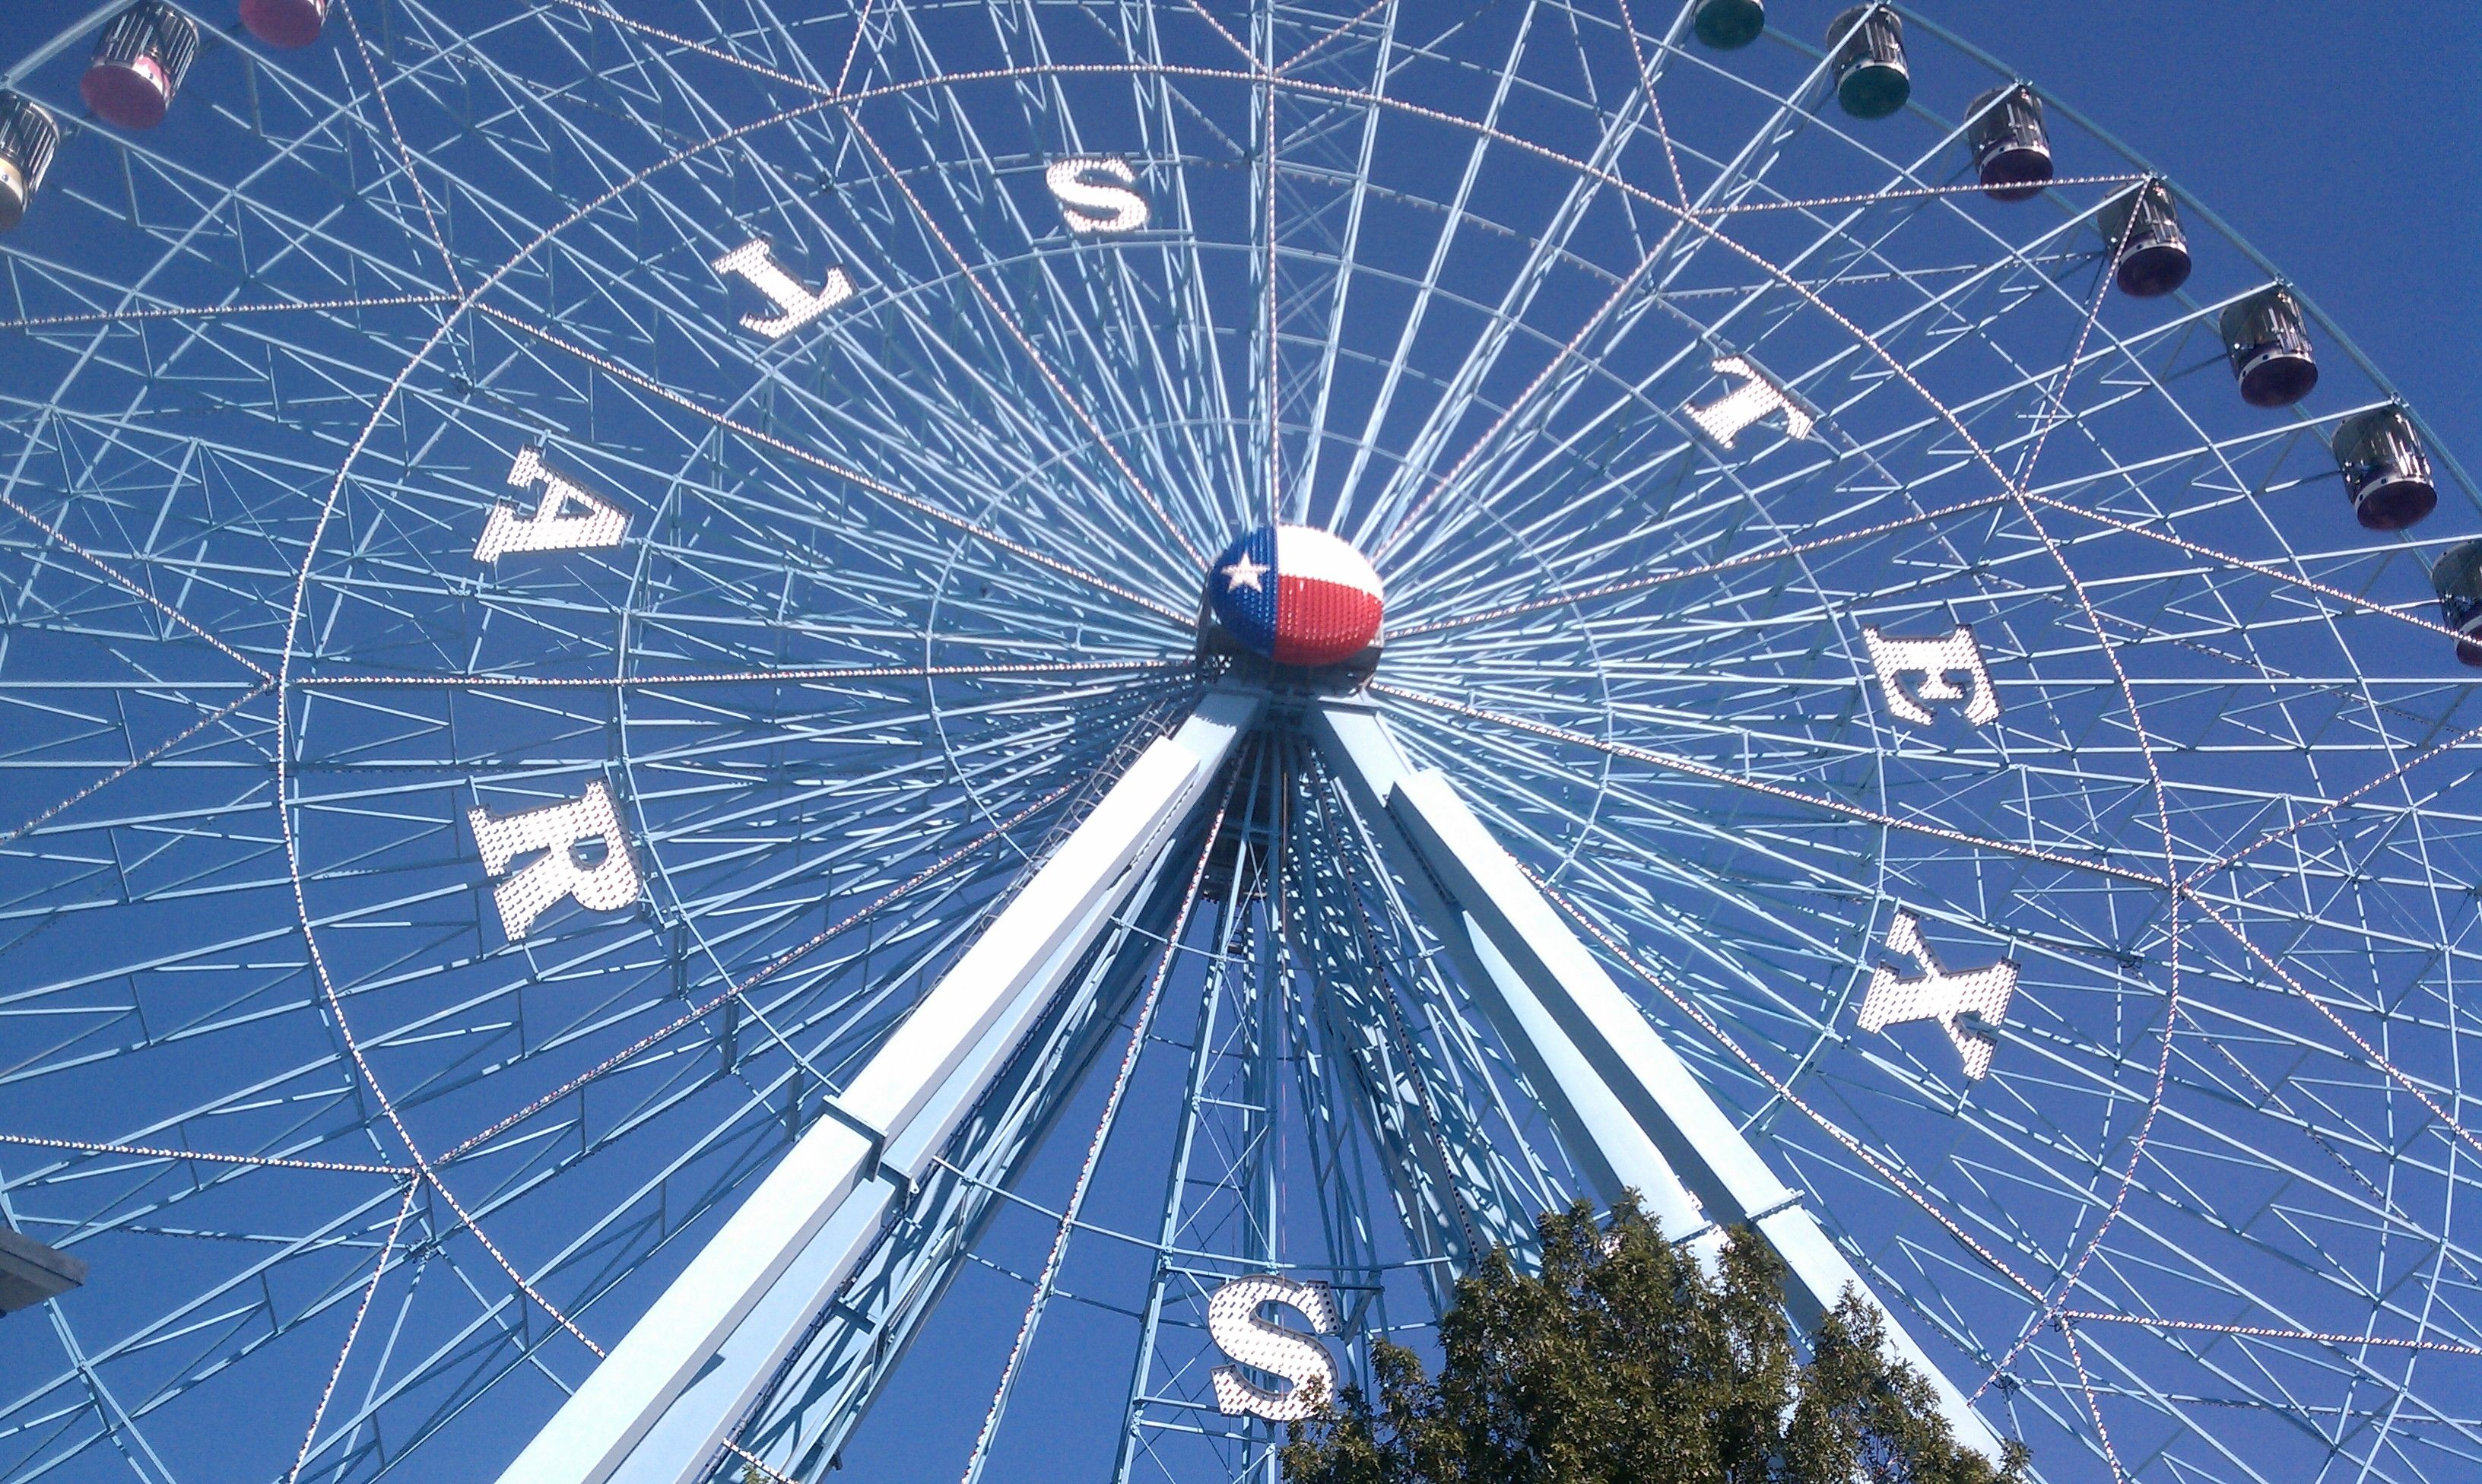 Moved to Texas in 2010! Love the weather and the State Fair